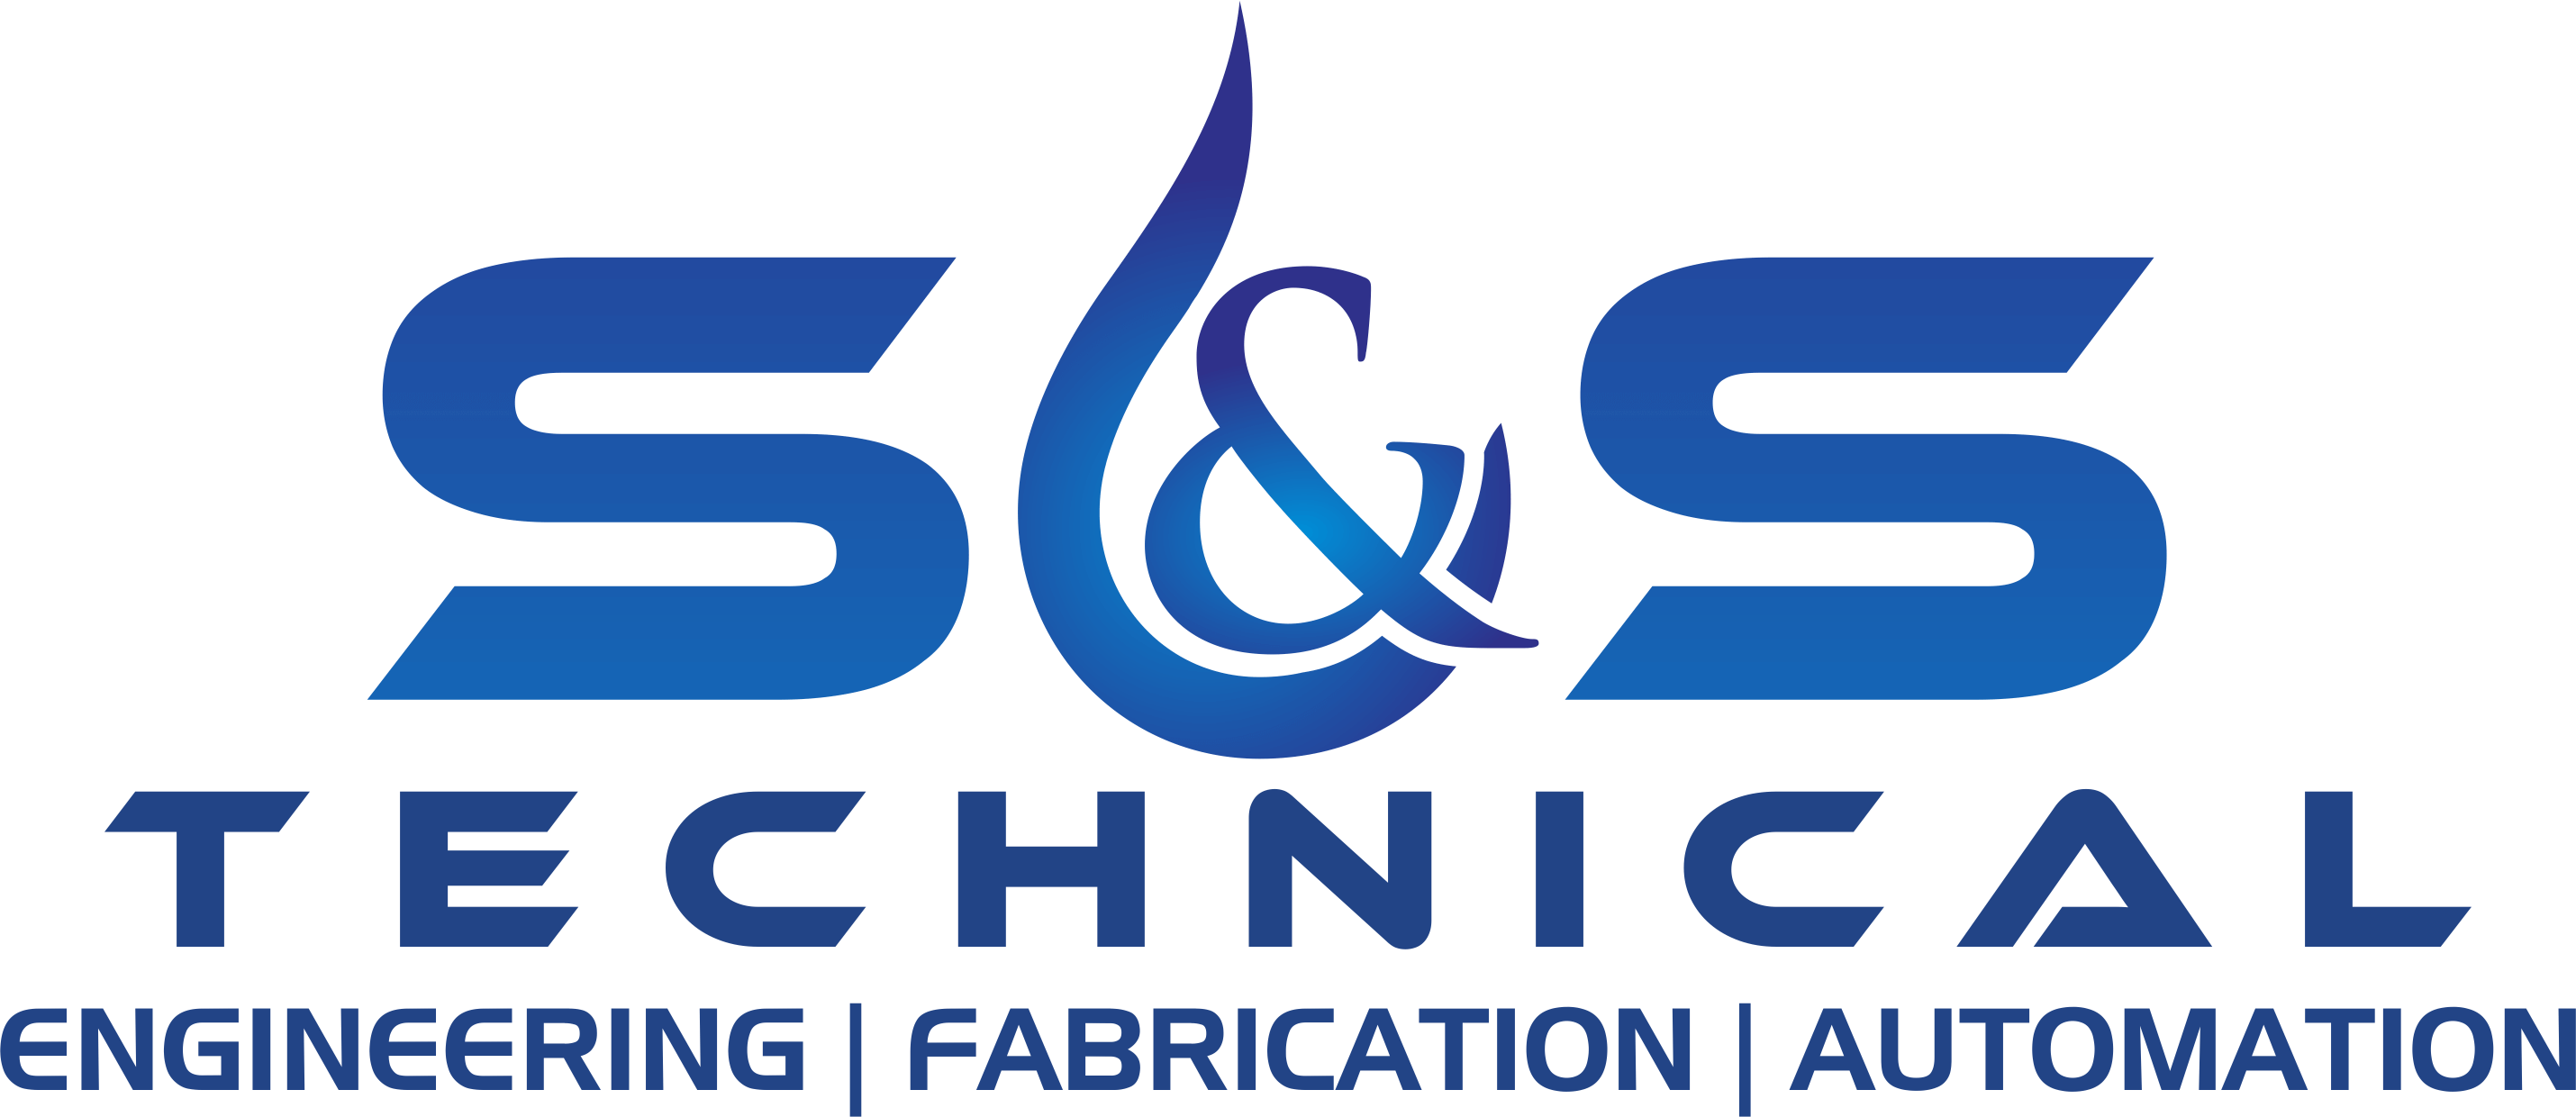 S&S Technical, Inc